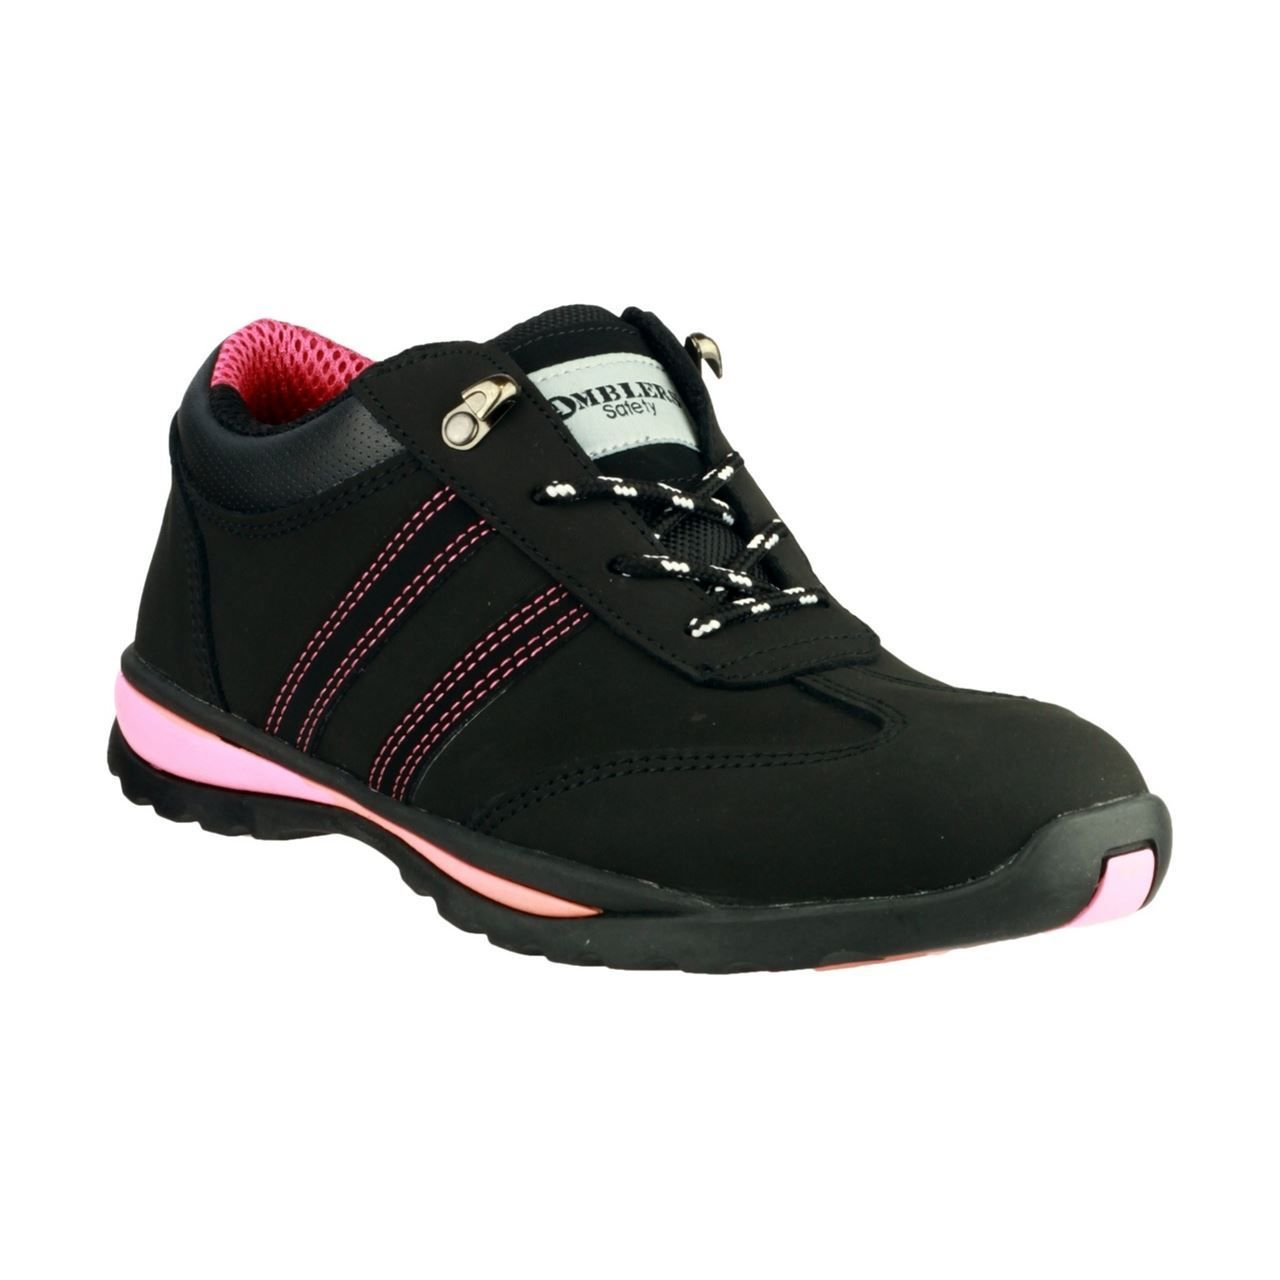 c52bc3ff6 FS47 - Amblers Womens S1 Safety Trainer by Amblers